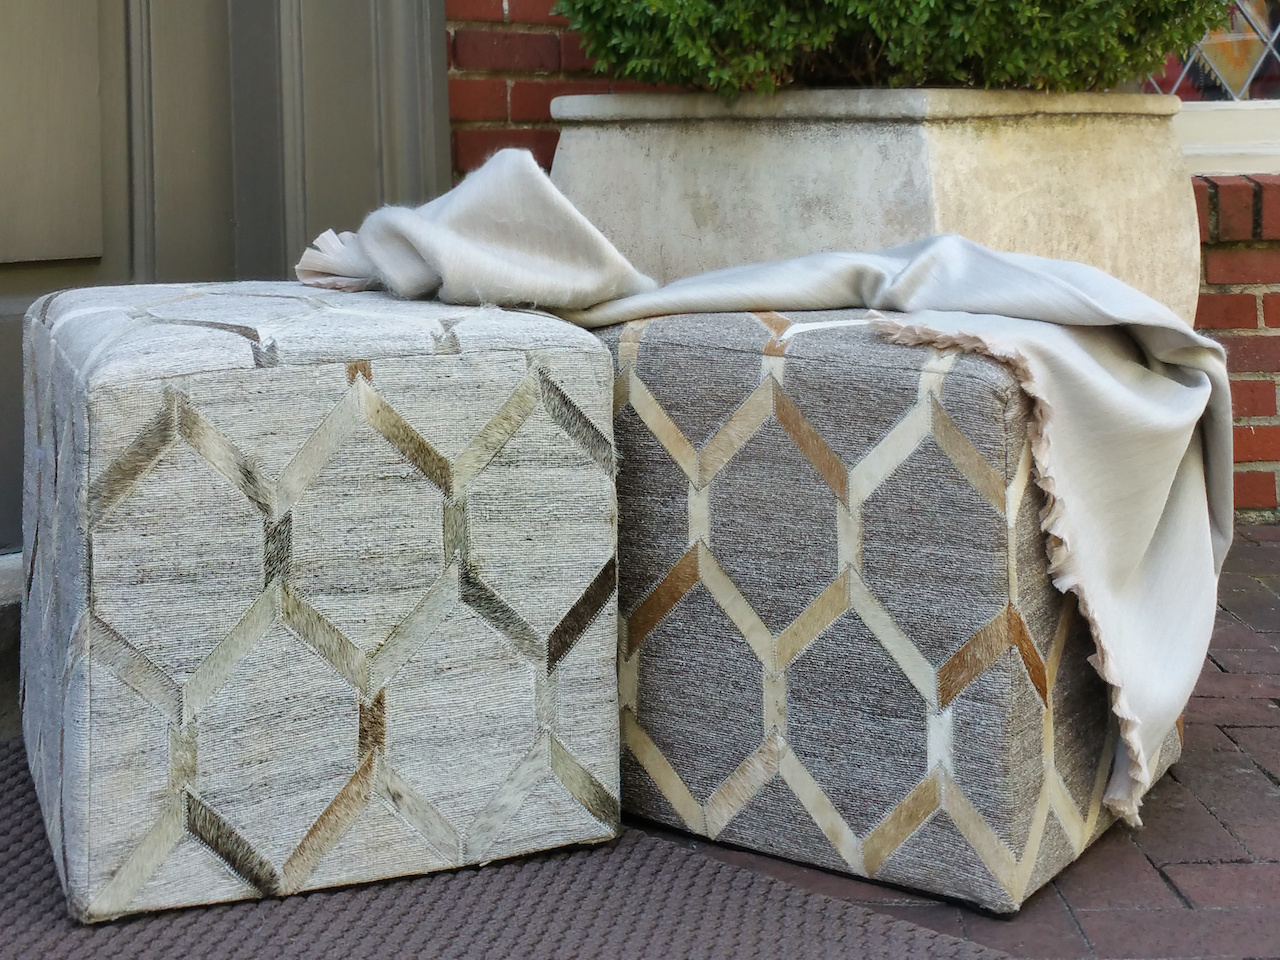 Cowhide-on-linen ottomans, $300 each, and alpaca blankets, $125, at at Paige Albright Orientals